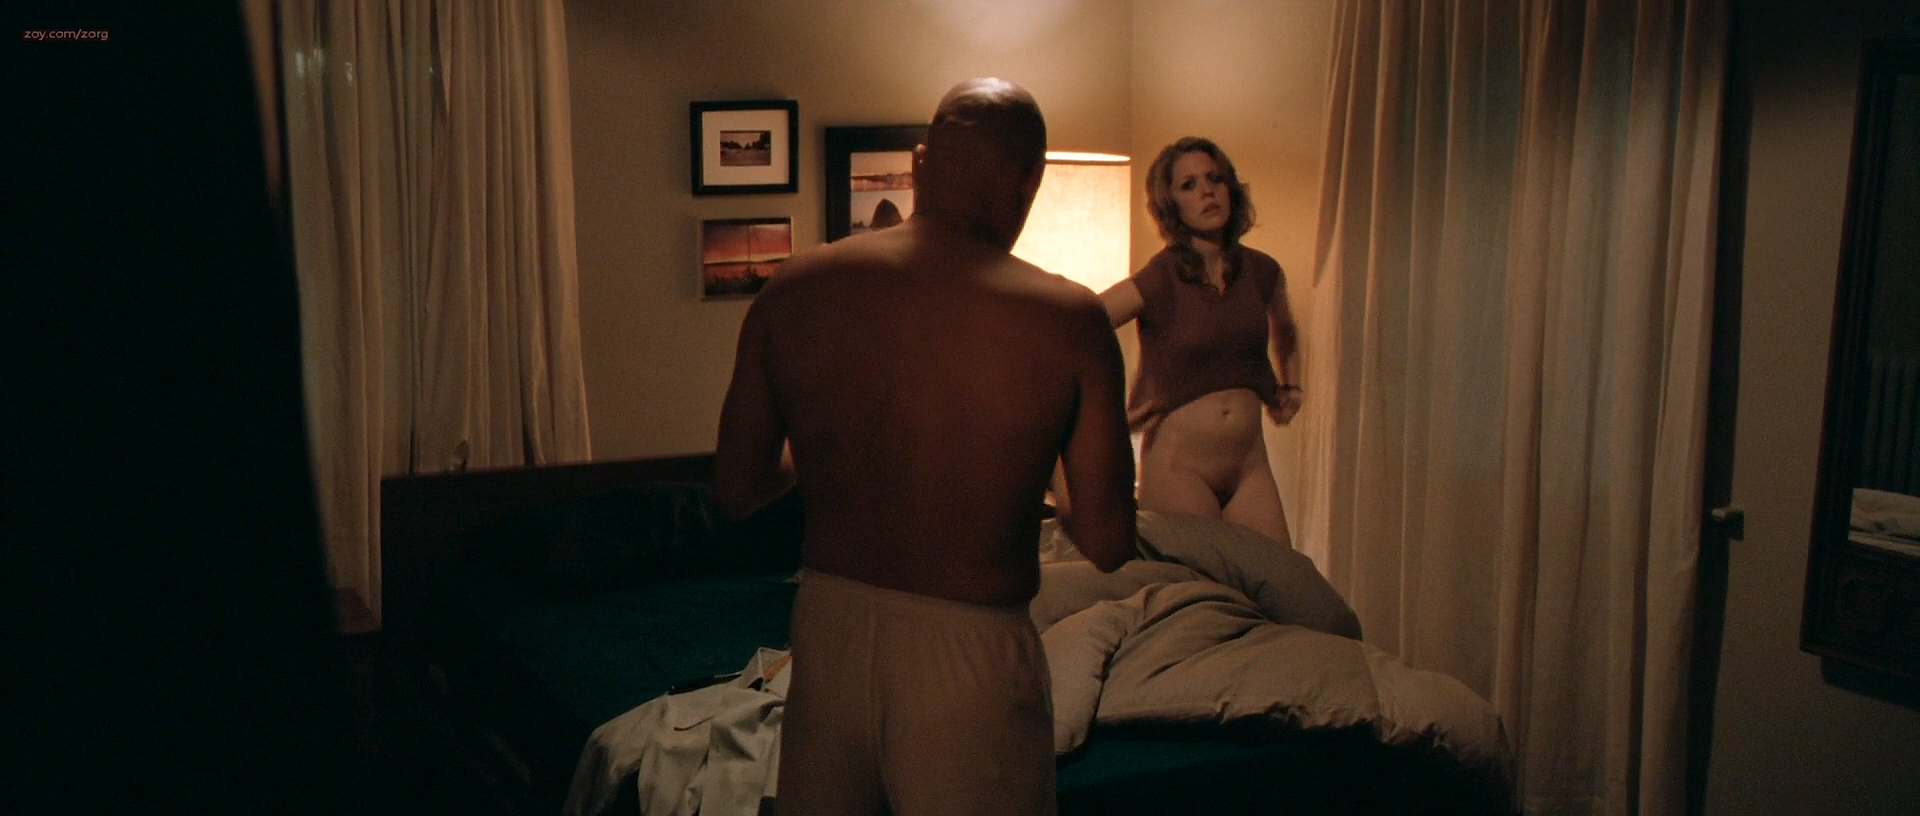 Jena Malone nude butt, boobs and Lisa Joyce nude full frontal - The Messenger (2009) HD 1080p (9)